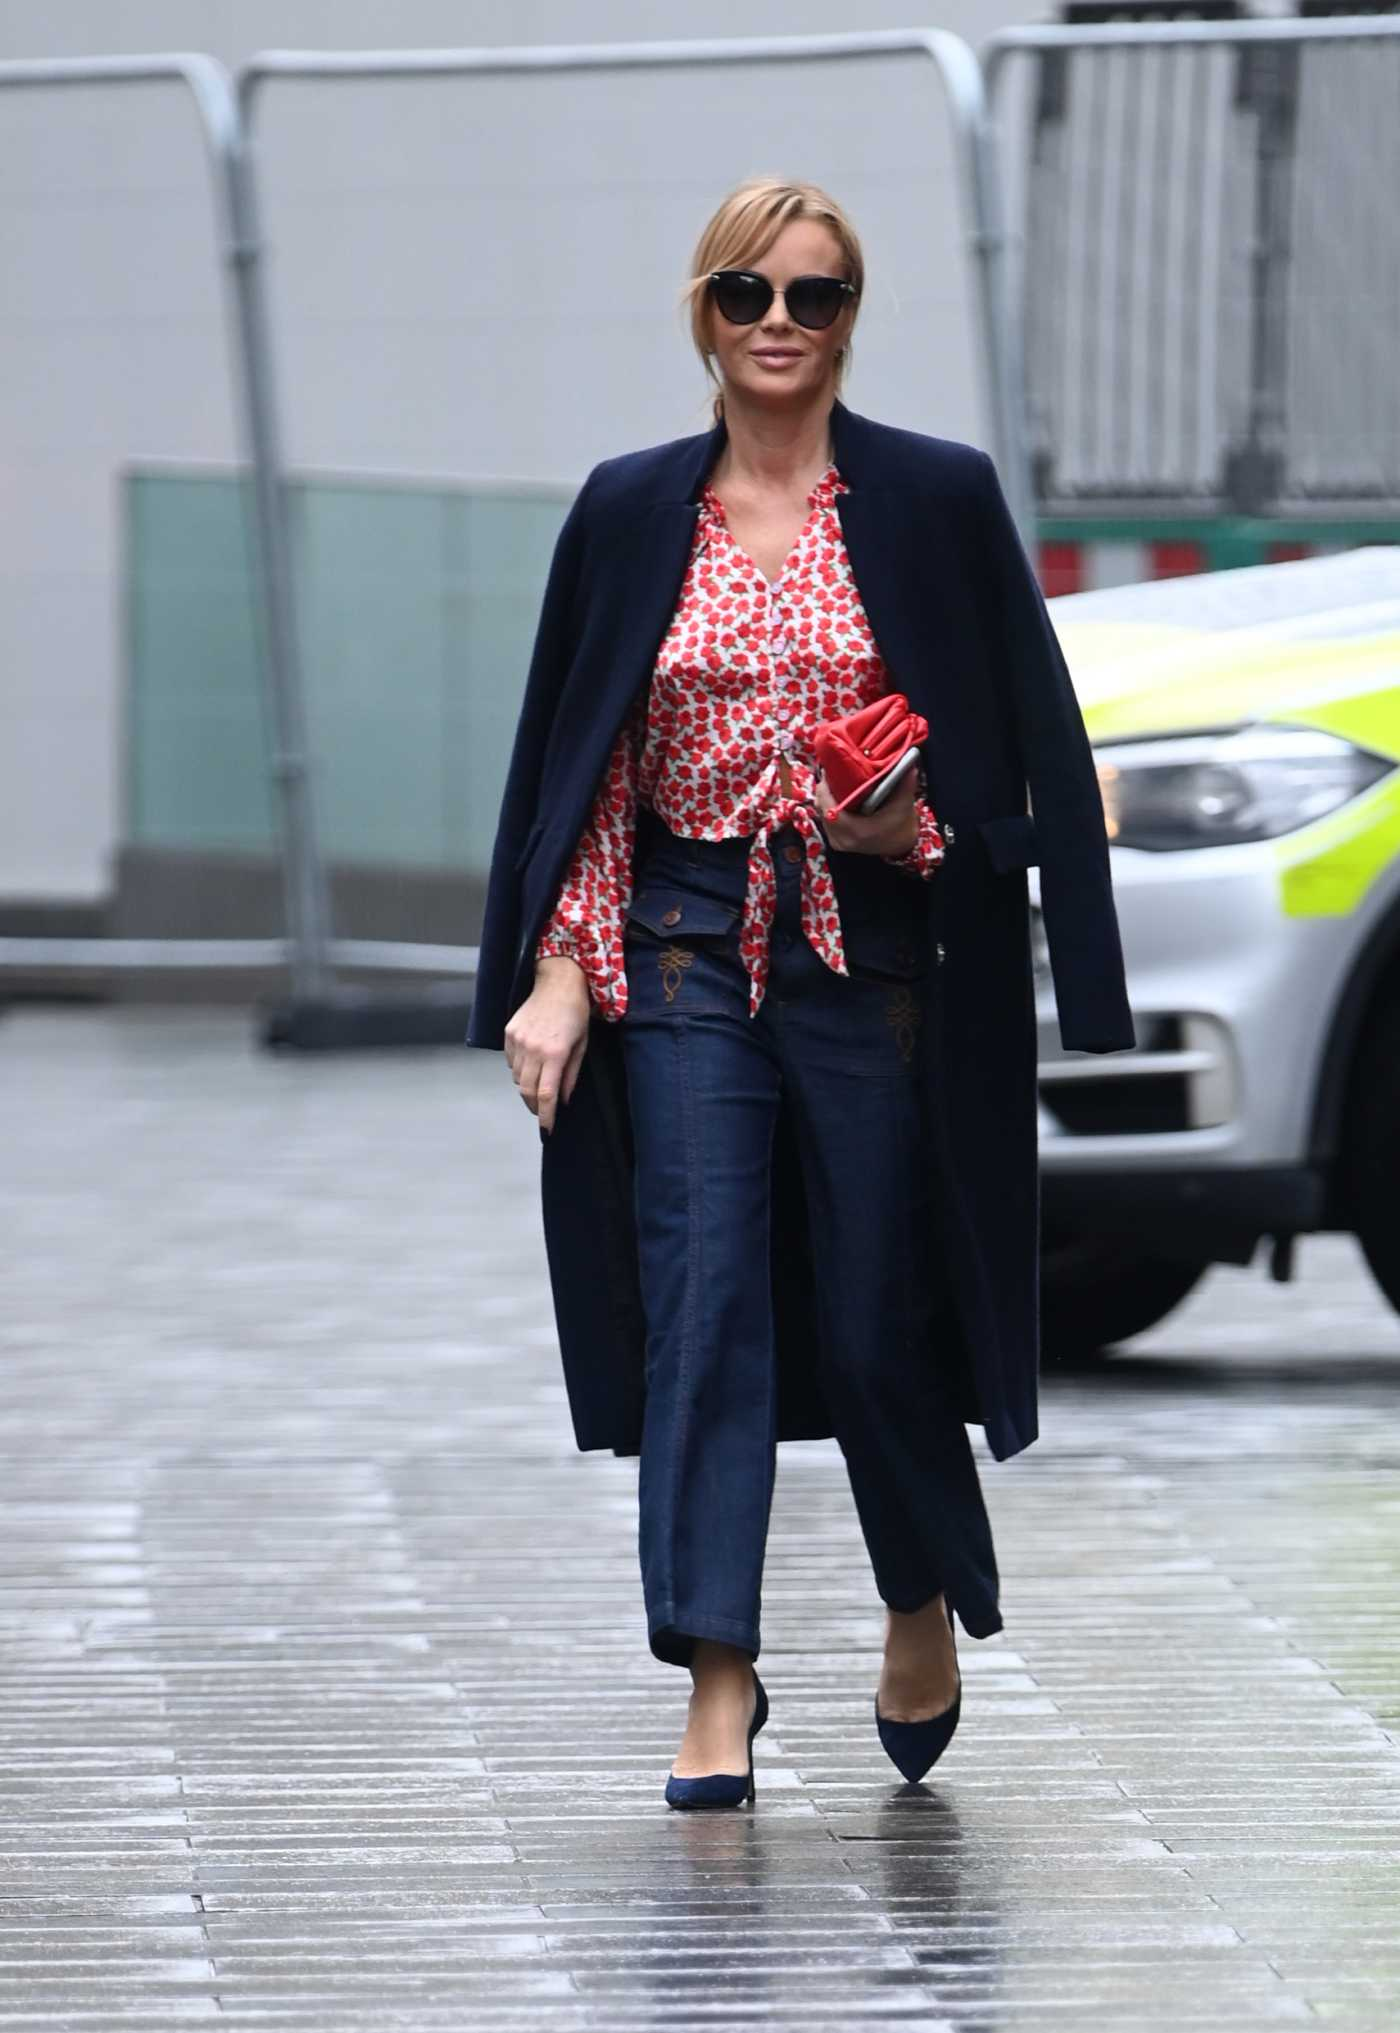 Amanda Holden in a Red Floral Blouse Leaves the Global Radio in London 11/13/2020